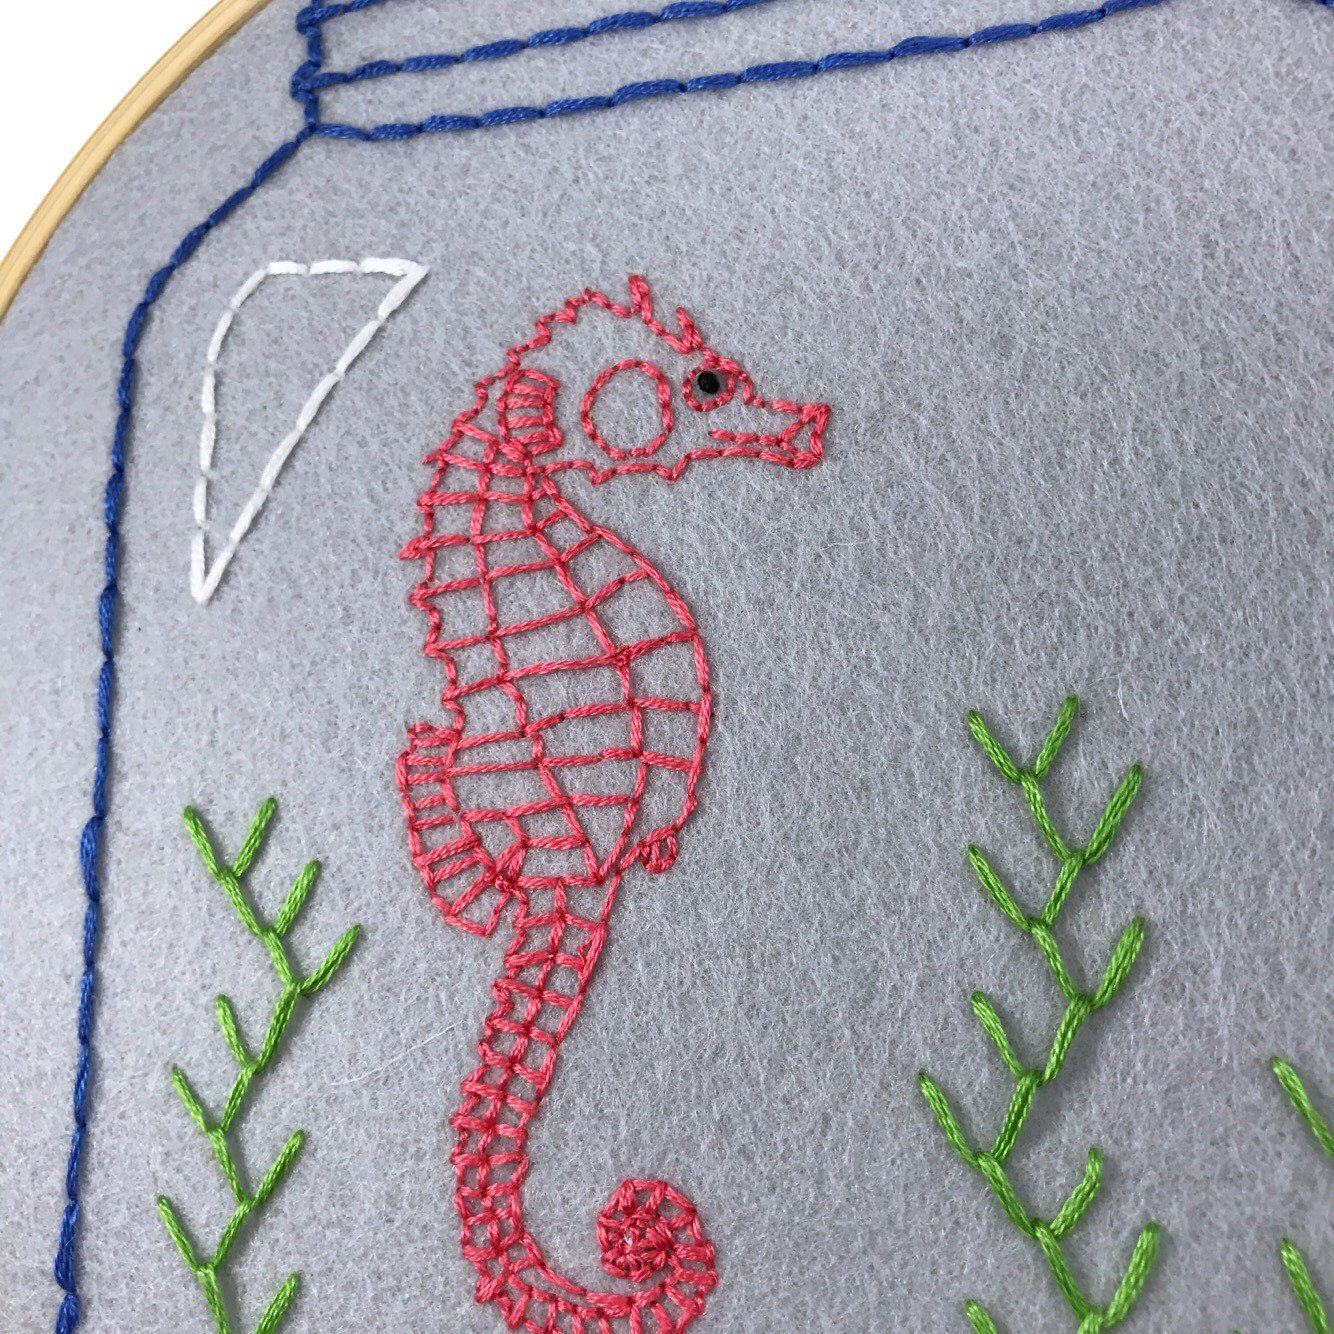 """I stitched this 8"""" hoop up as an example of a pattern in my shop and it's also in my shop as a finished product in the """"hand embroidered art"""" section if you're not embroidery-inclined."""